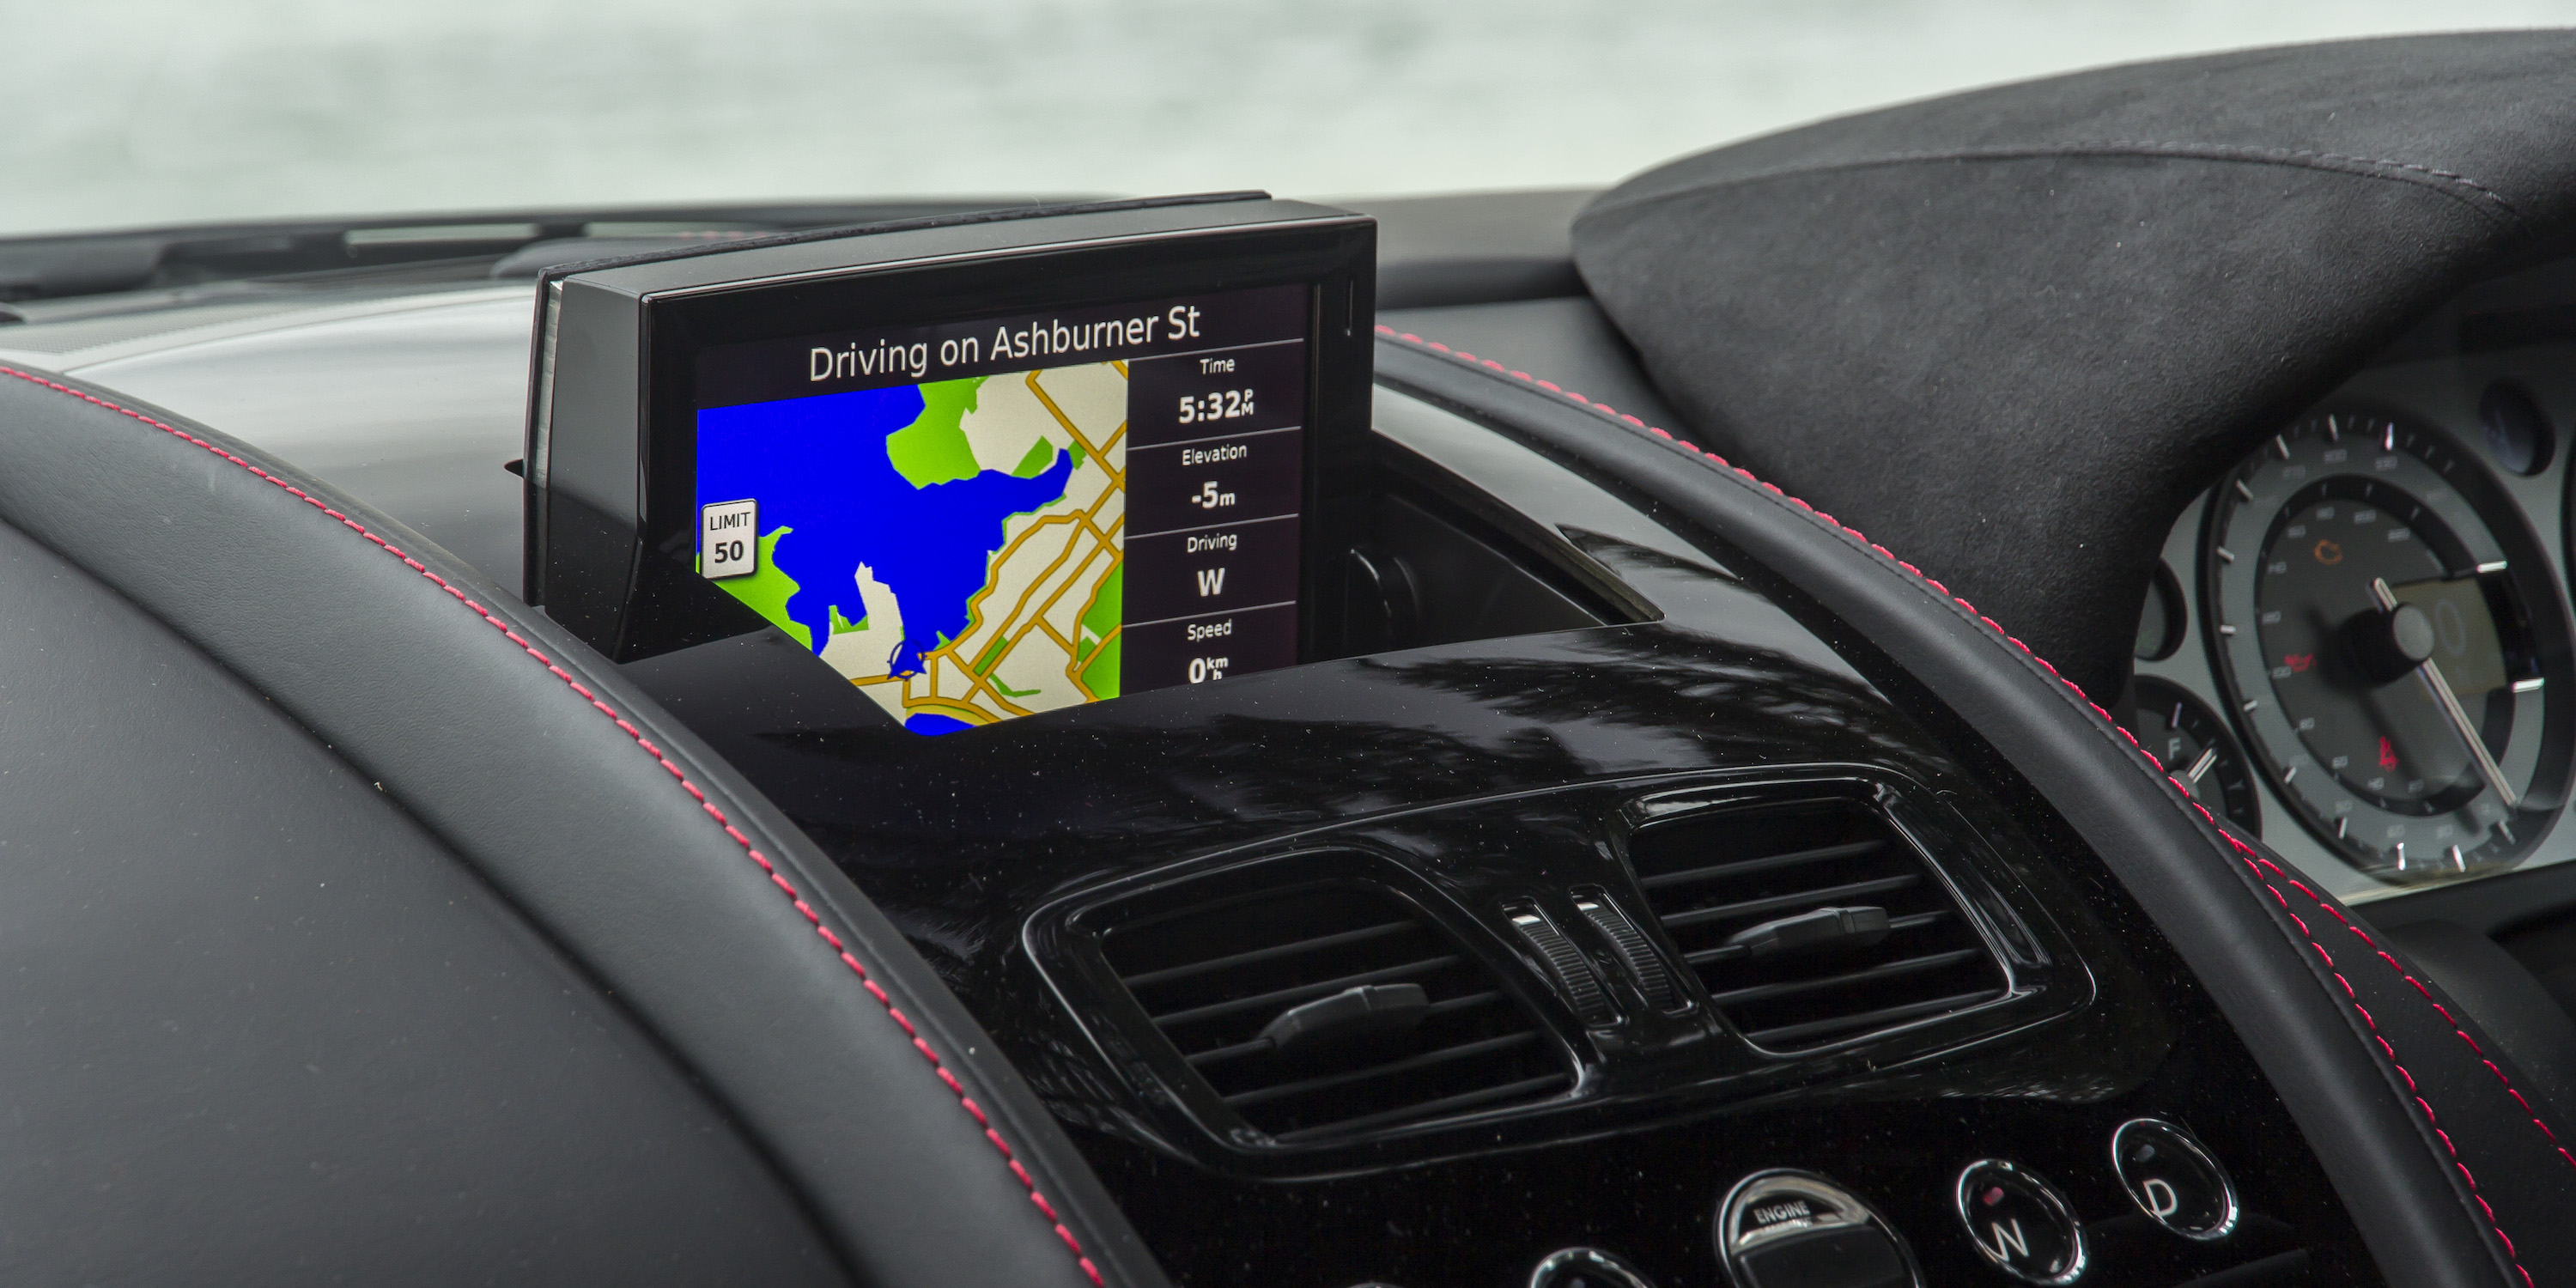 2016 Aston Martin Vantage Gt Head Unit (View 3 of 25)